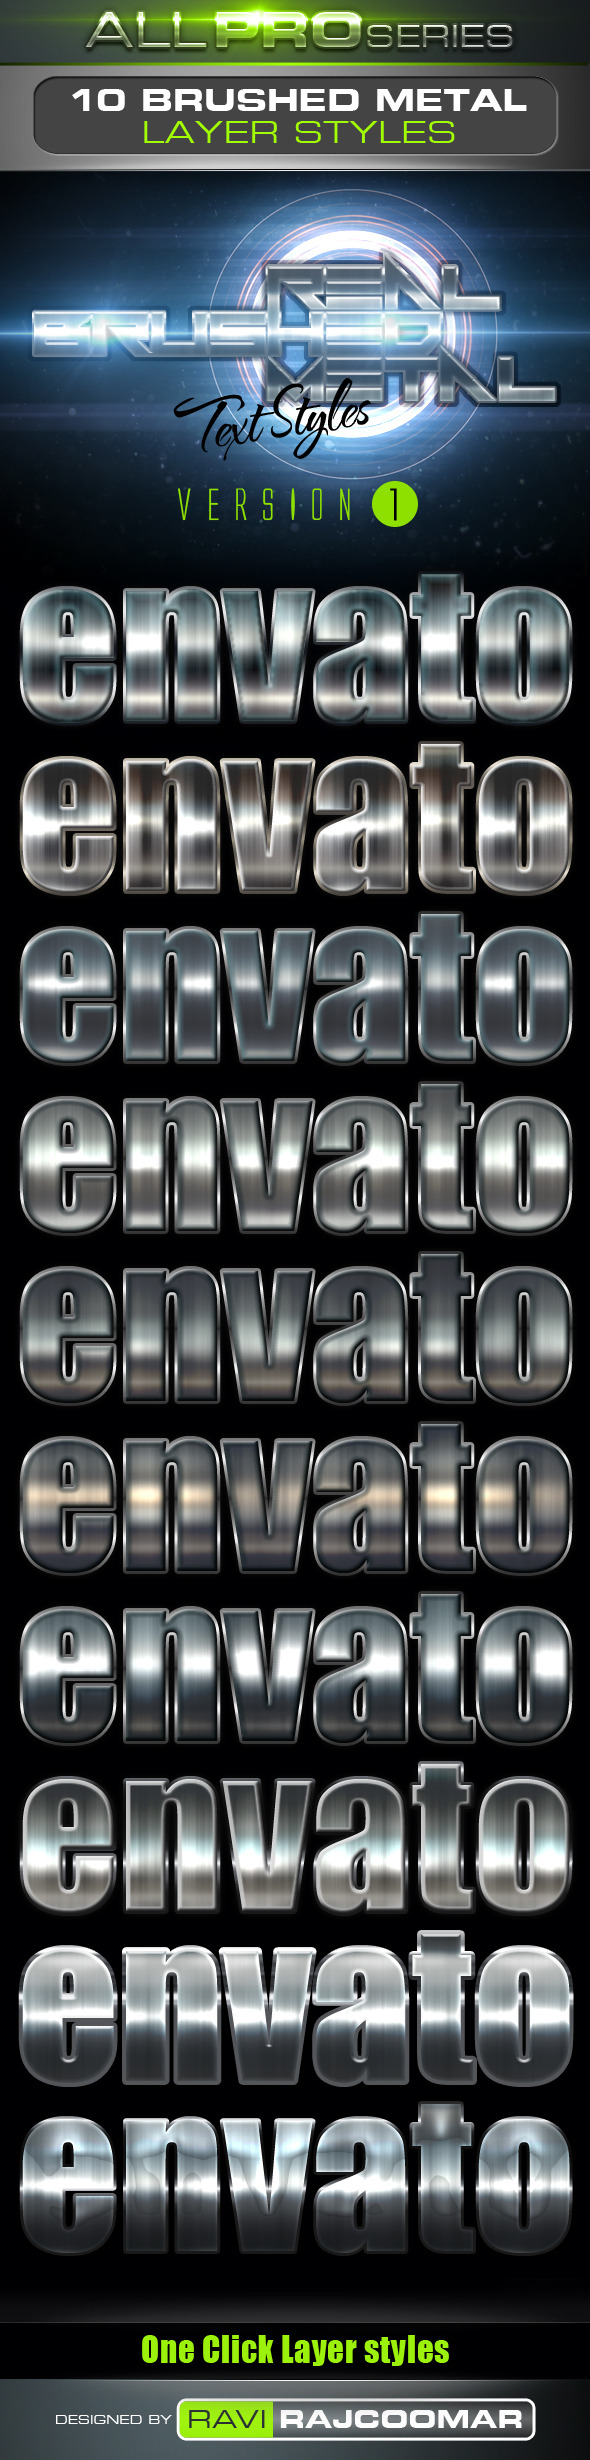 Real Brushed Metal Text Styles Vol.1 - Styles Photoshop